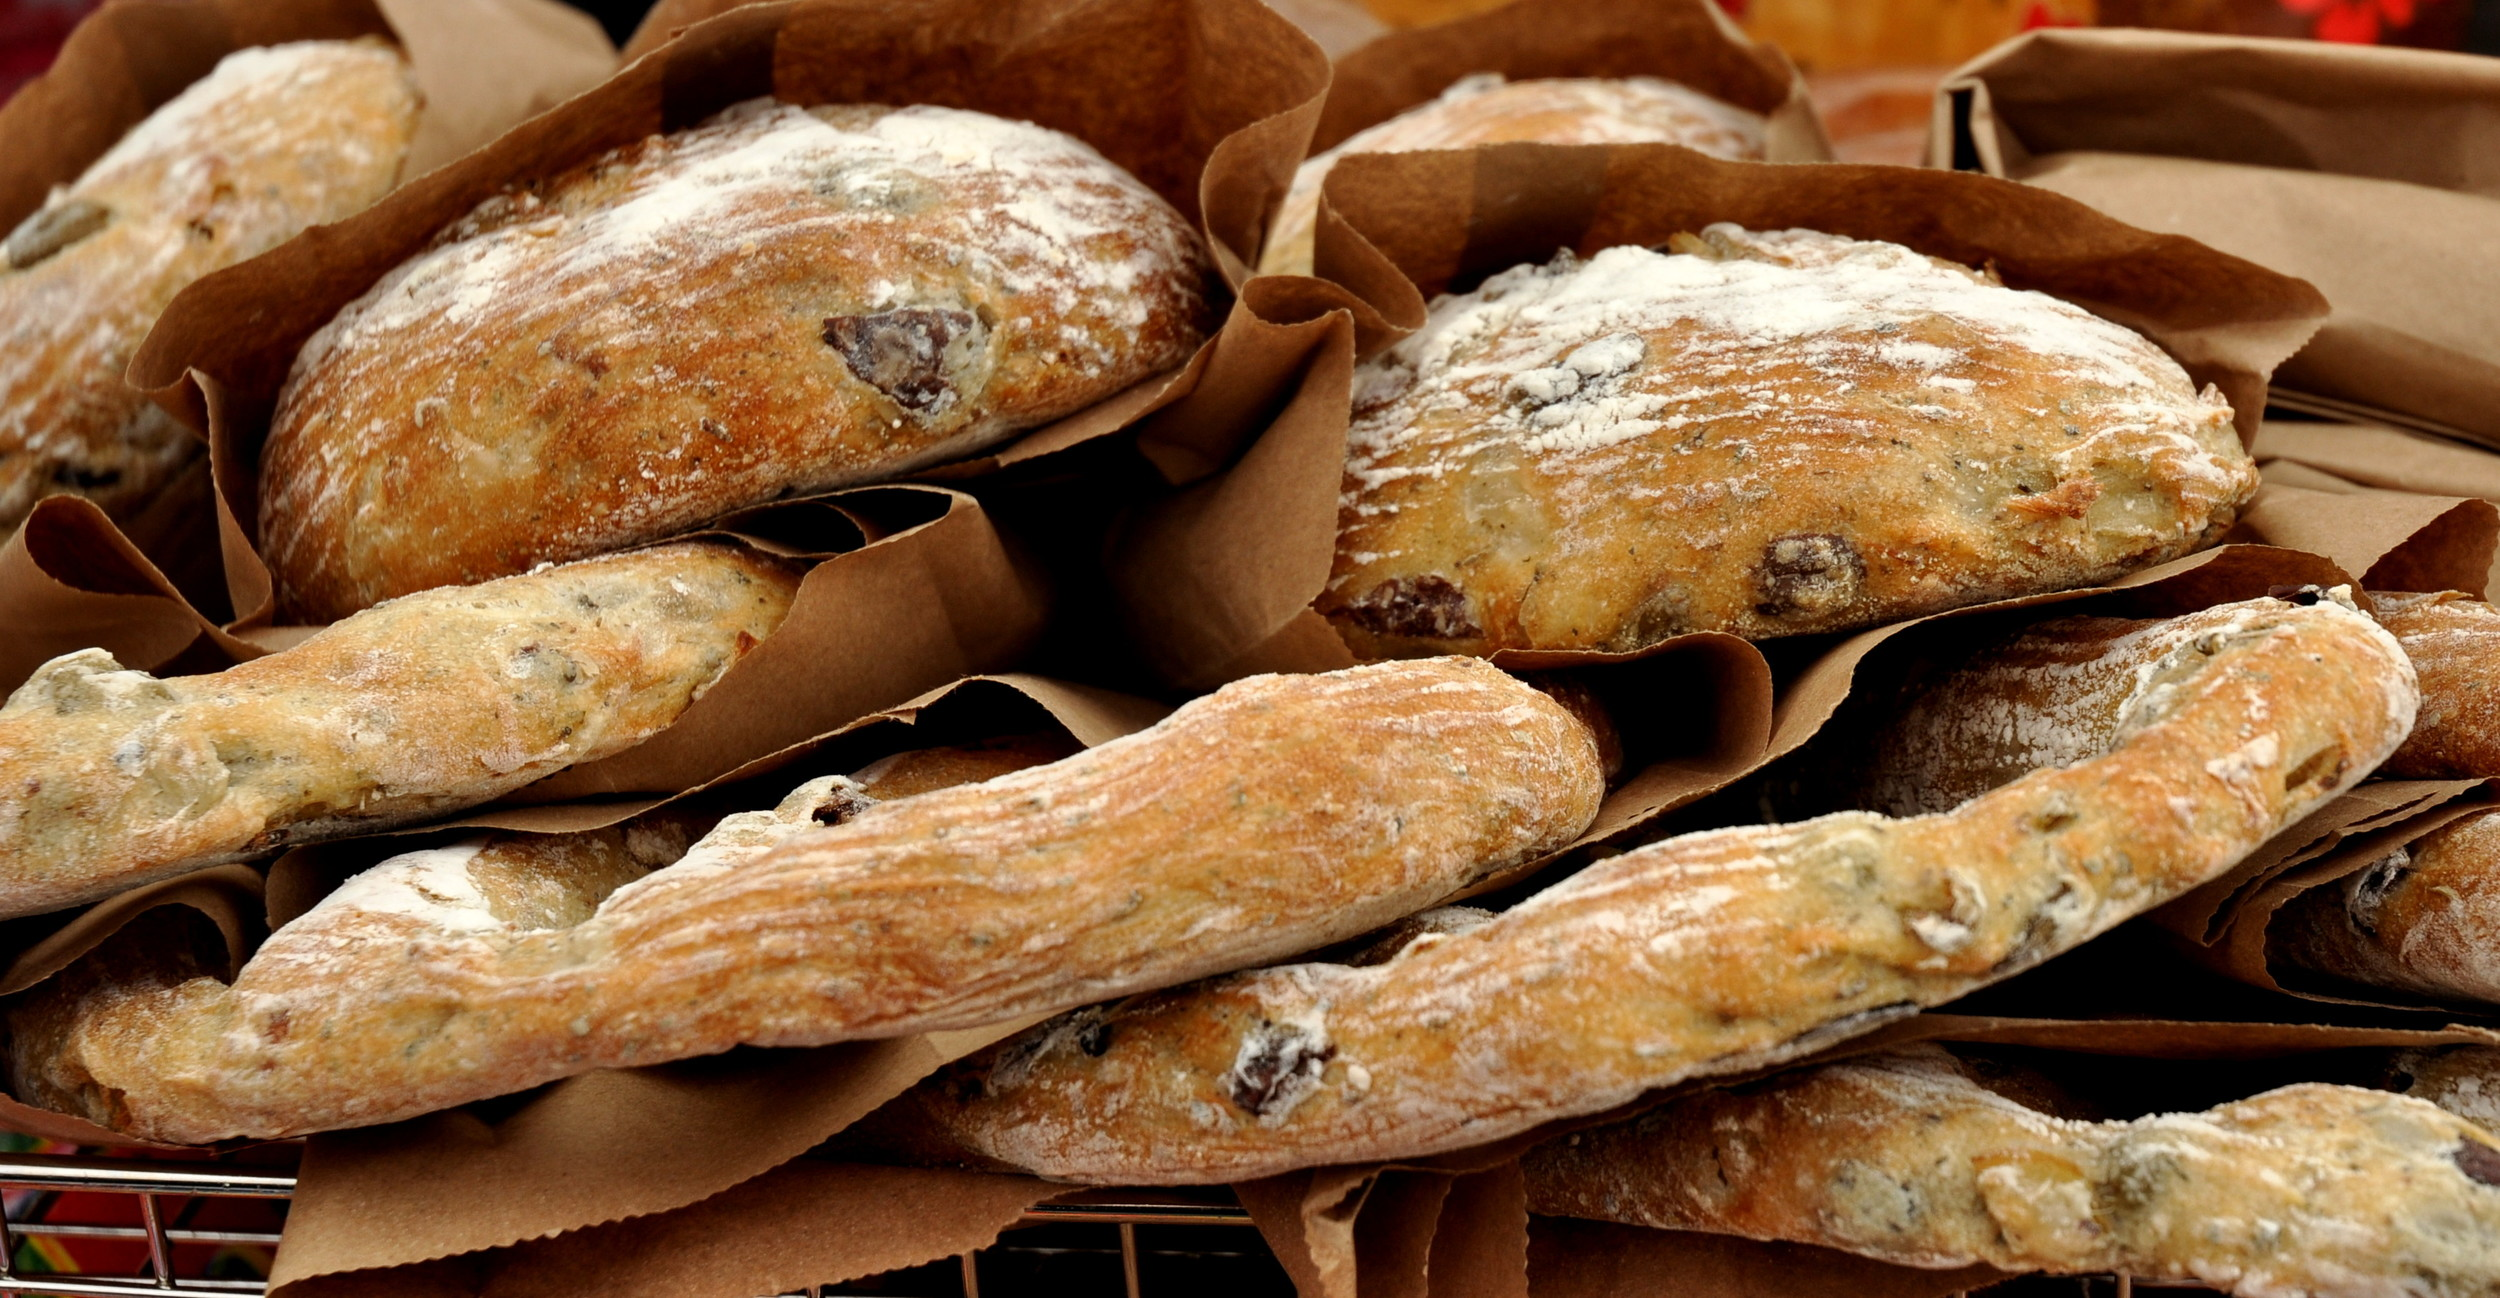 Fougasse from Tall Grass Bakery. Photo copyright 2011 by Zachary D. Lyons.